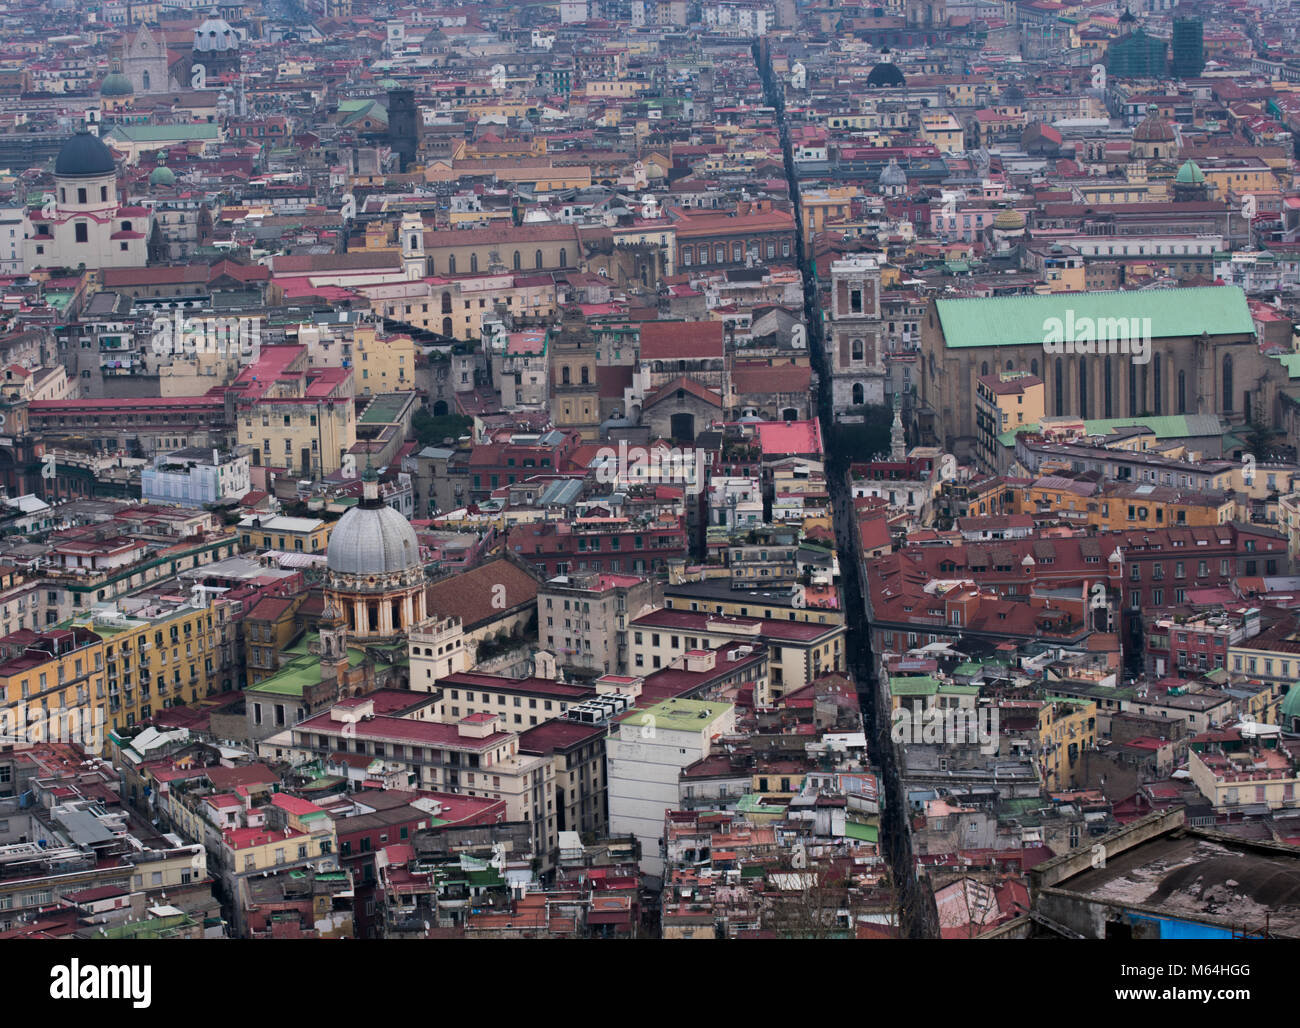 Spaccanapoli, Naples, Italy - Stock Image